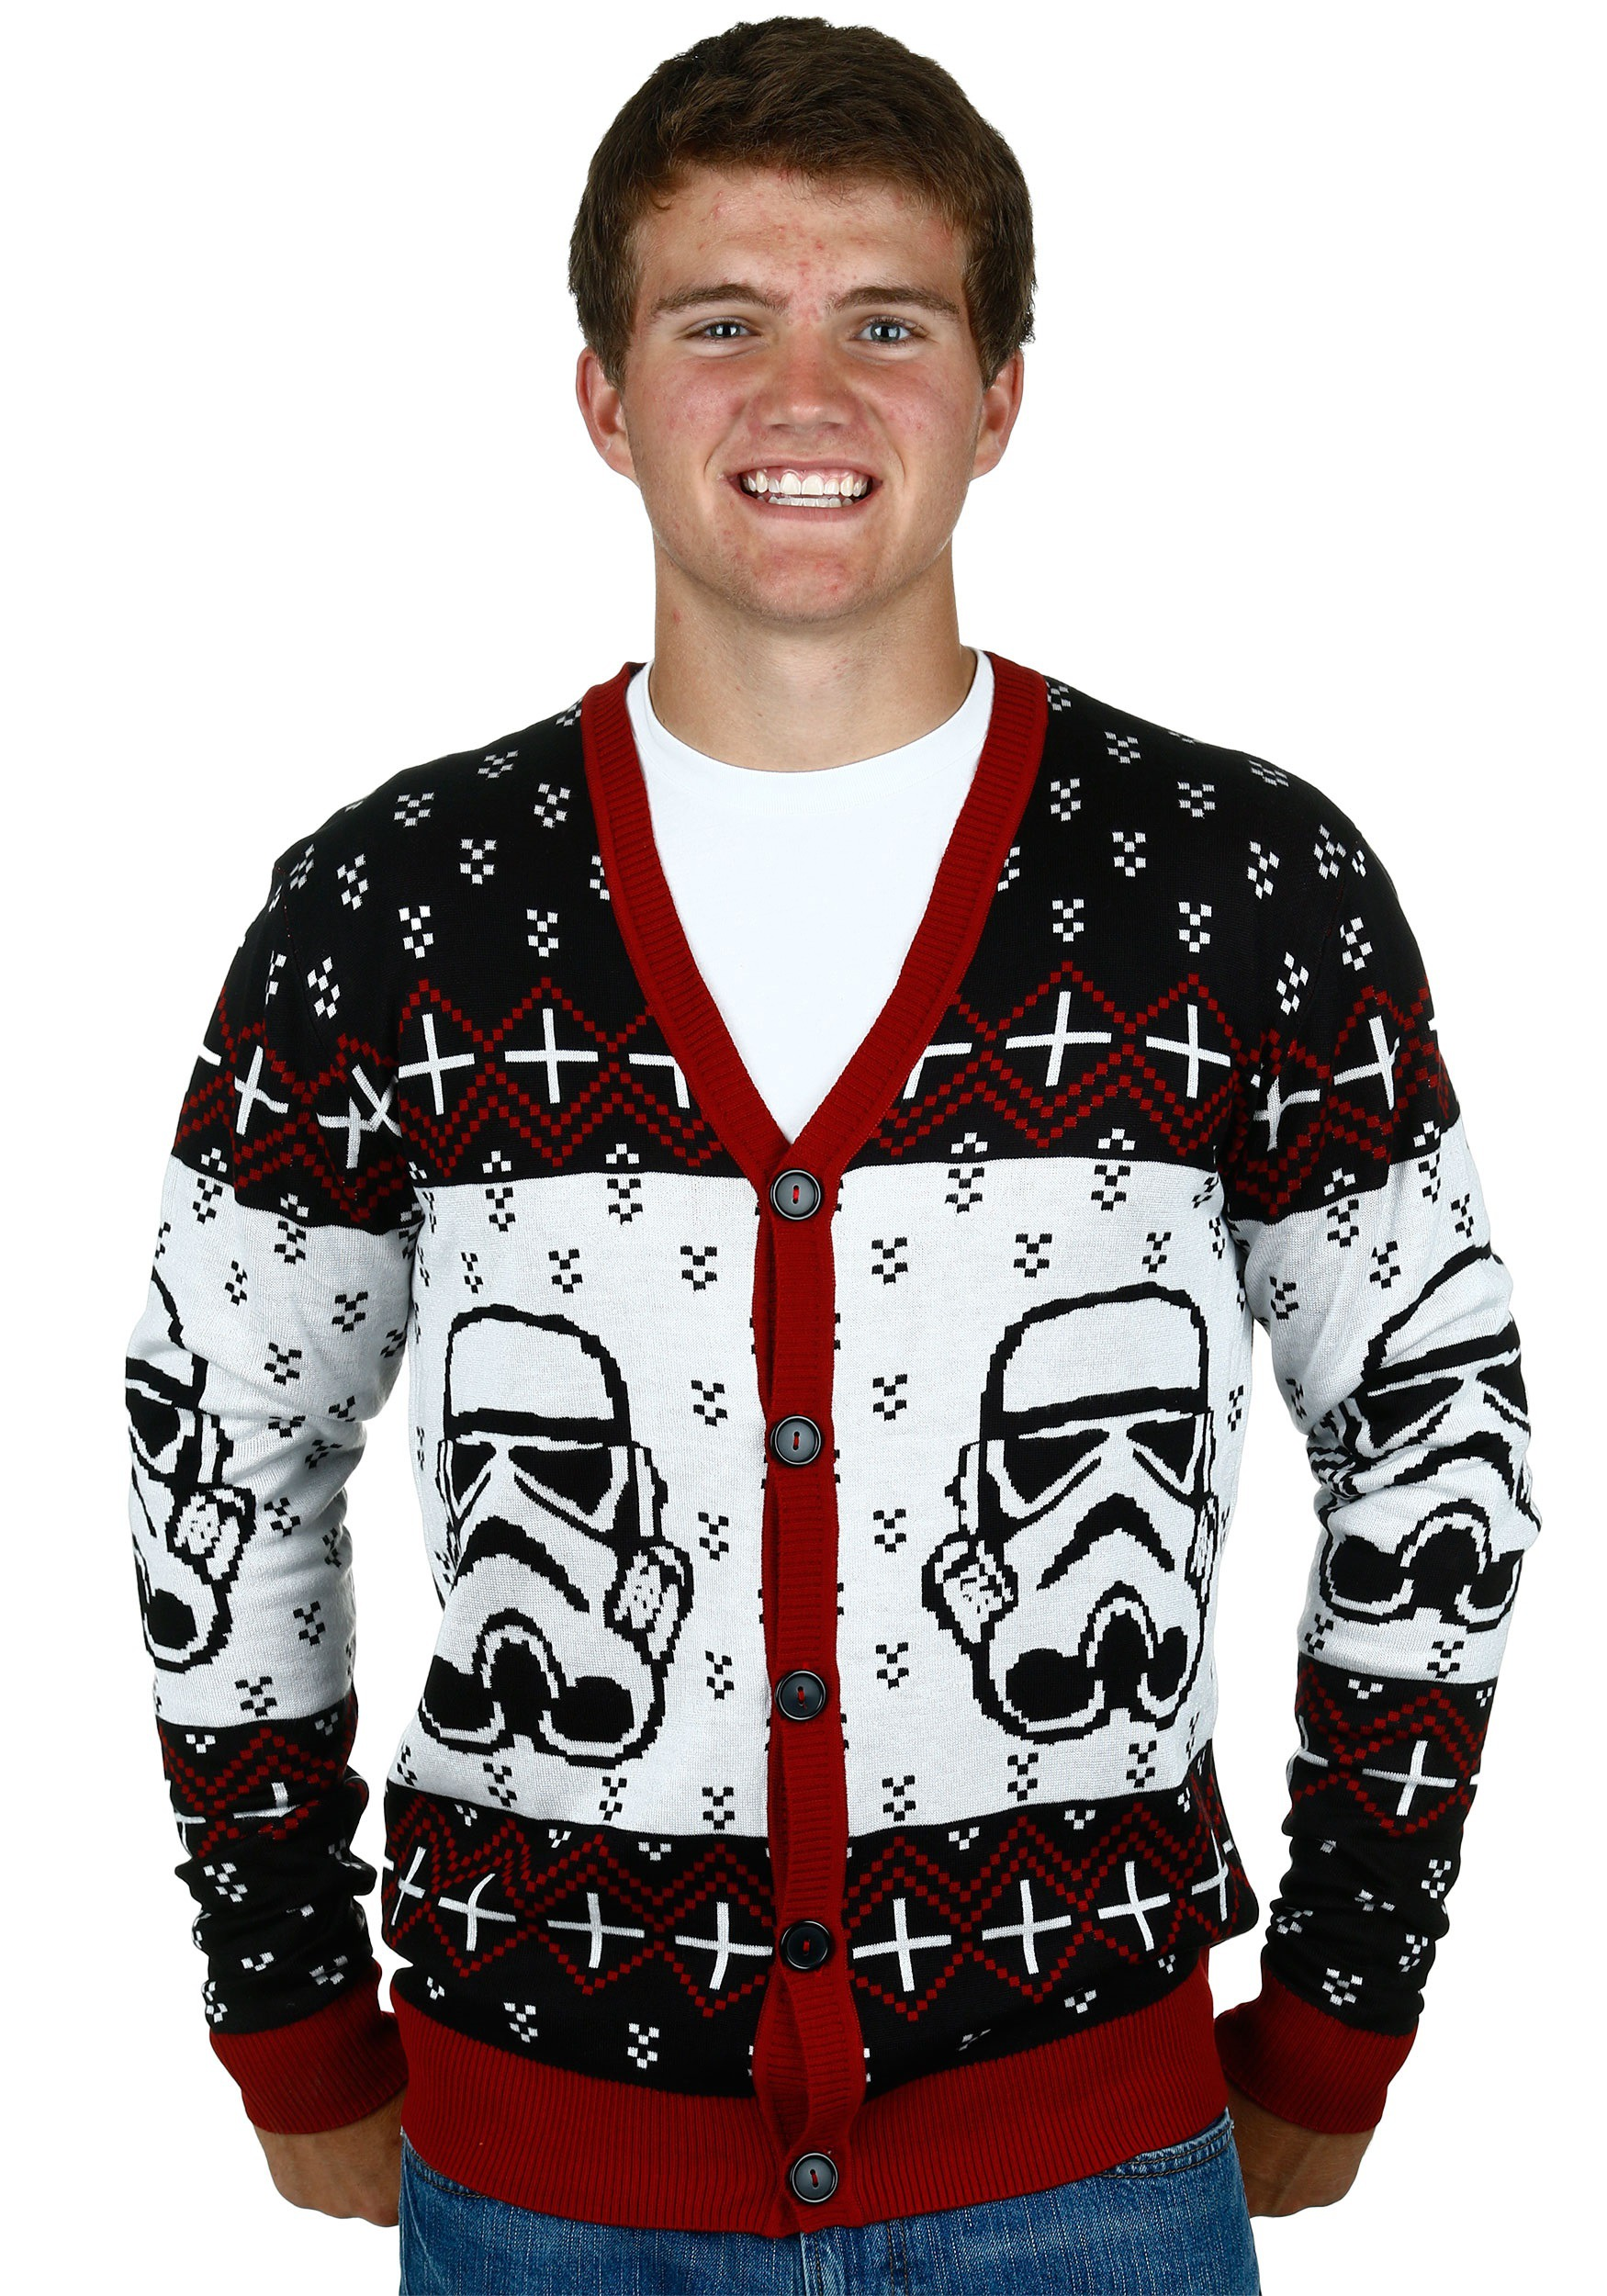 7a493befcba2 Star Wars Stormtrooper Men s Ugly Christmas Cardigan